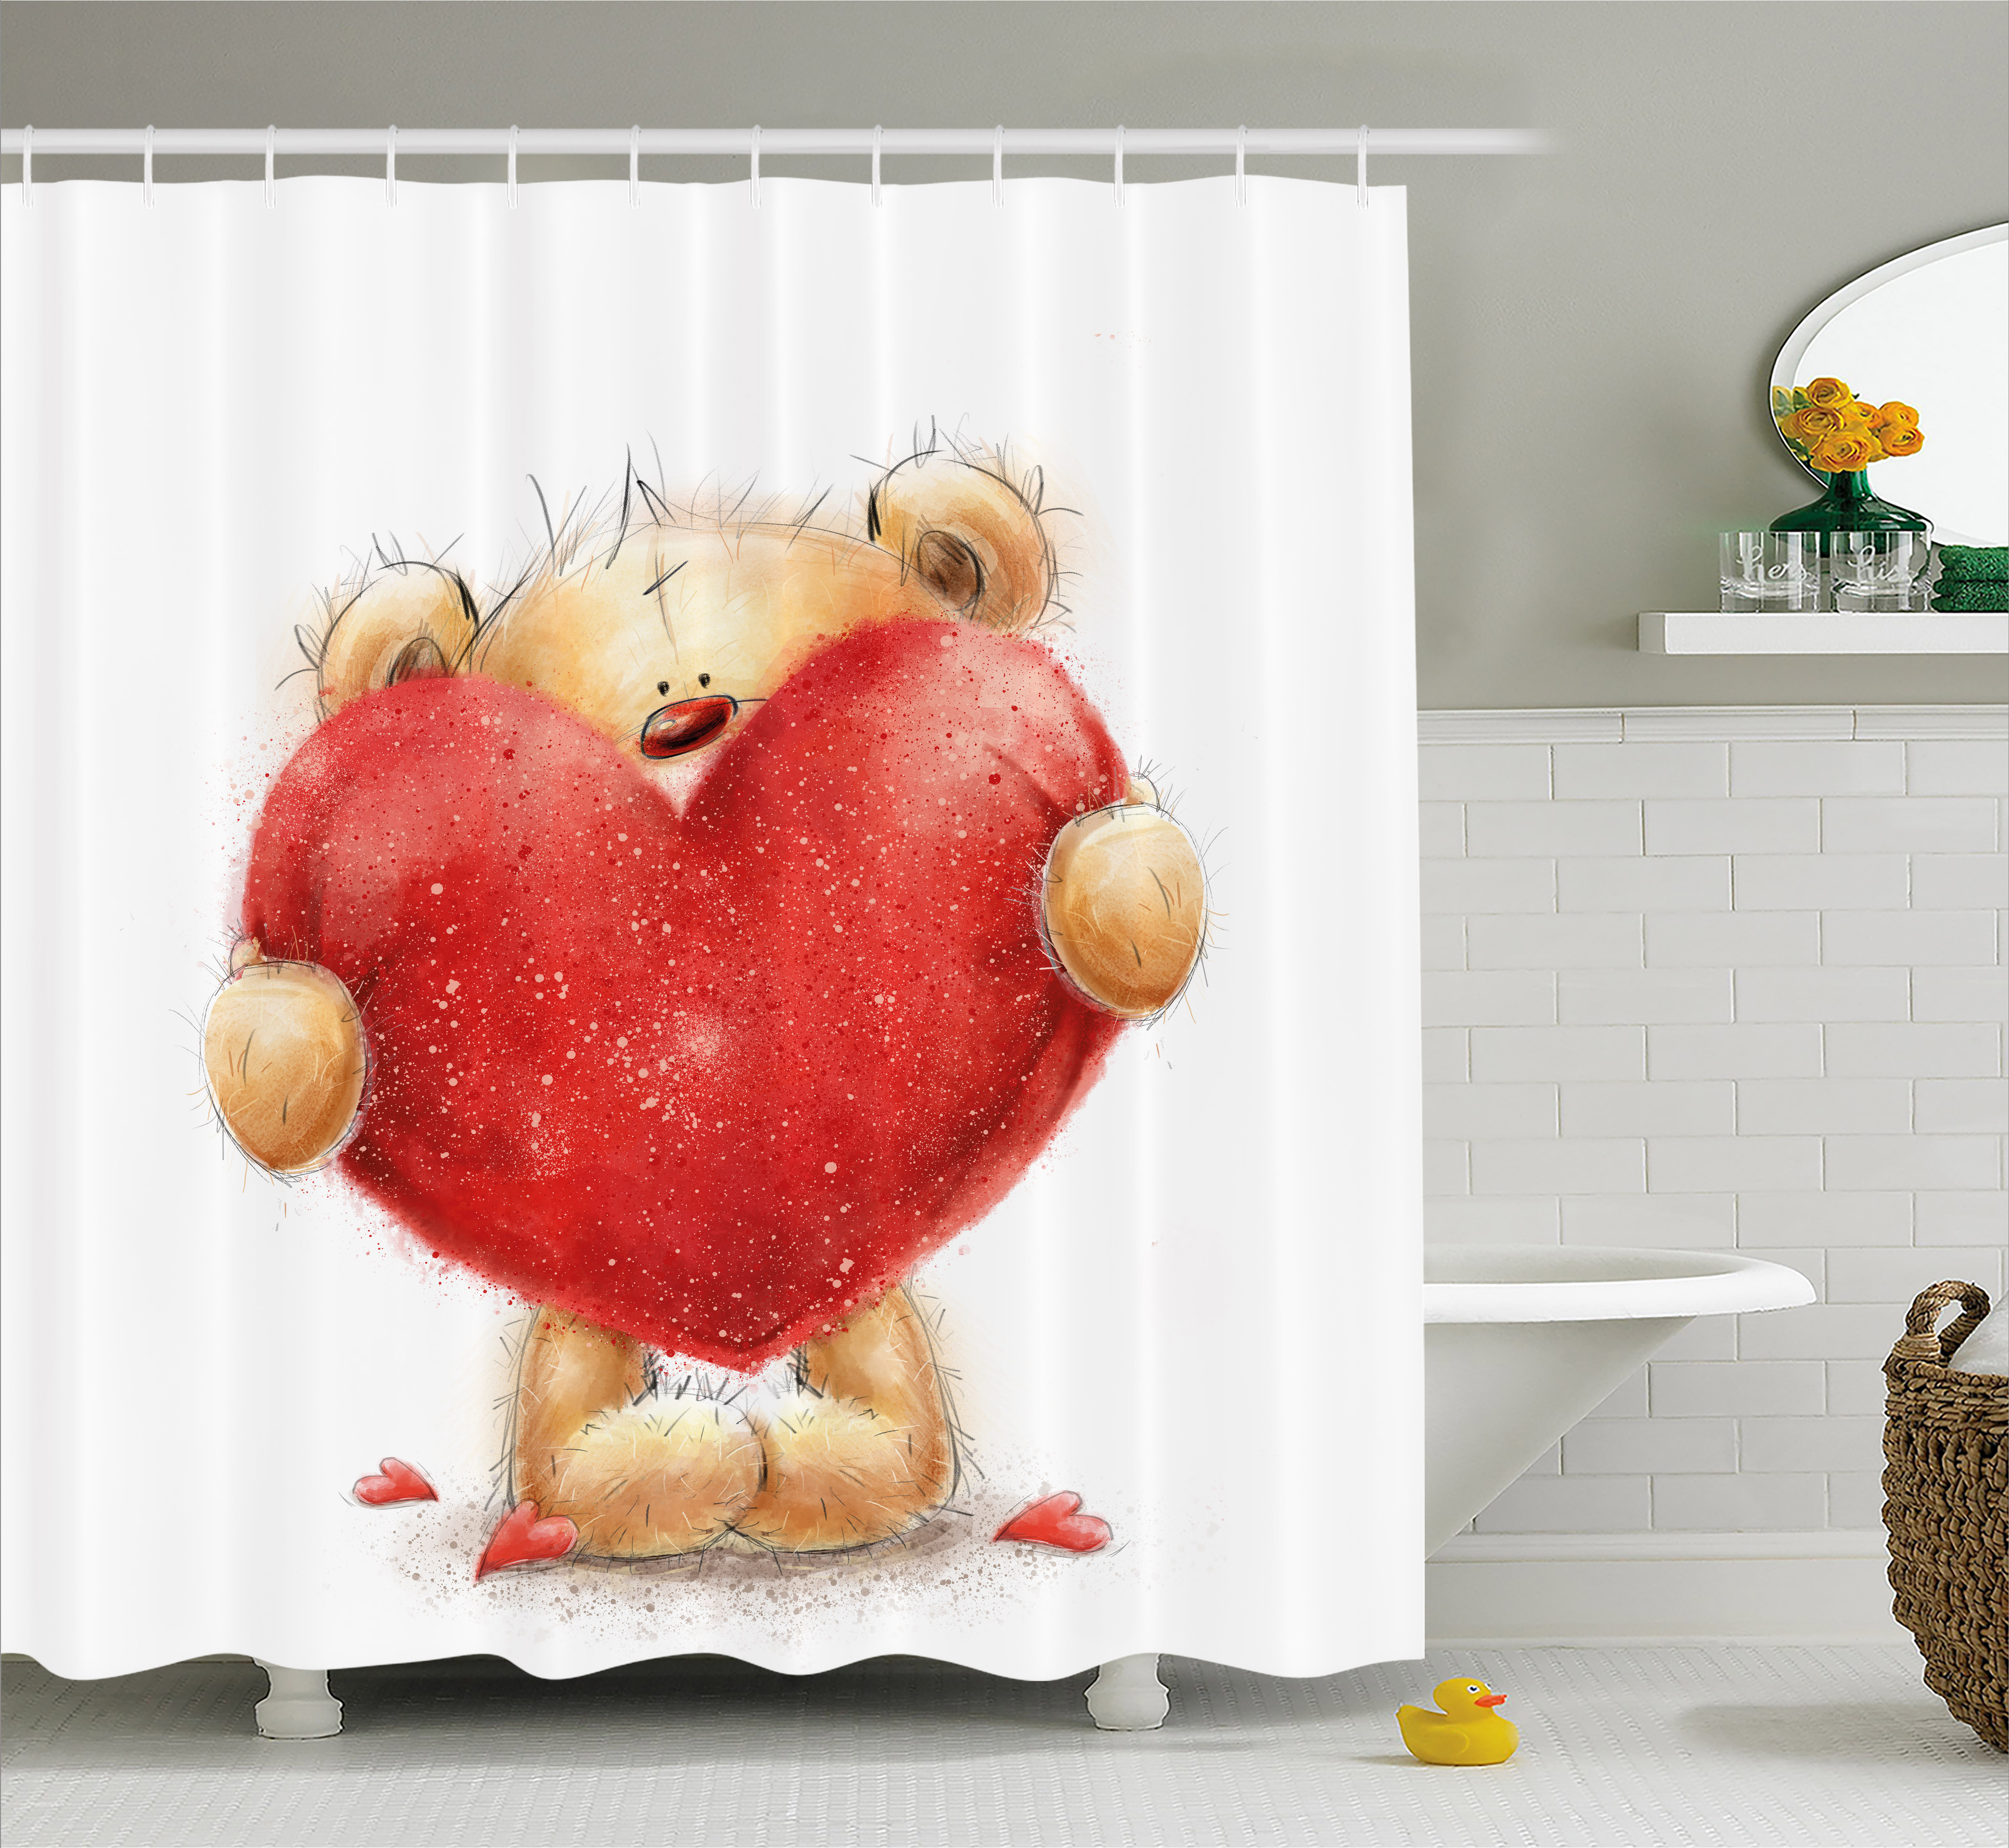 Bear Shower Curtain, Valentine's Day Inspired Sweet Teddy Bear Holding a Big Red Heart Love Romance, Fabric Bathroom Set with Hooks, 69W X 75L Inches Long, Sand Brown Red, by Ambesonne